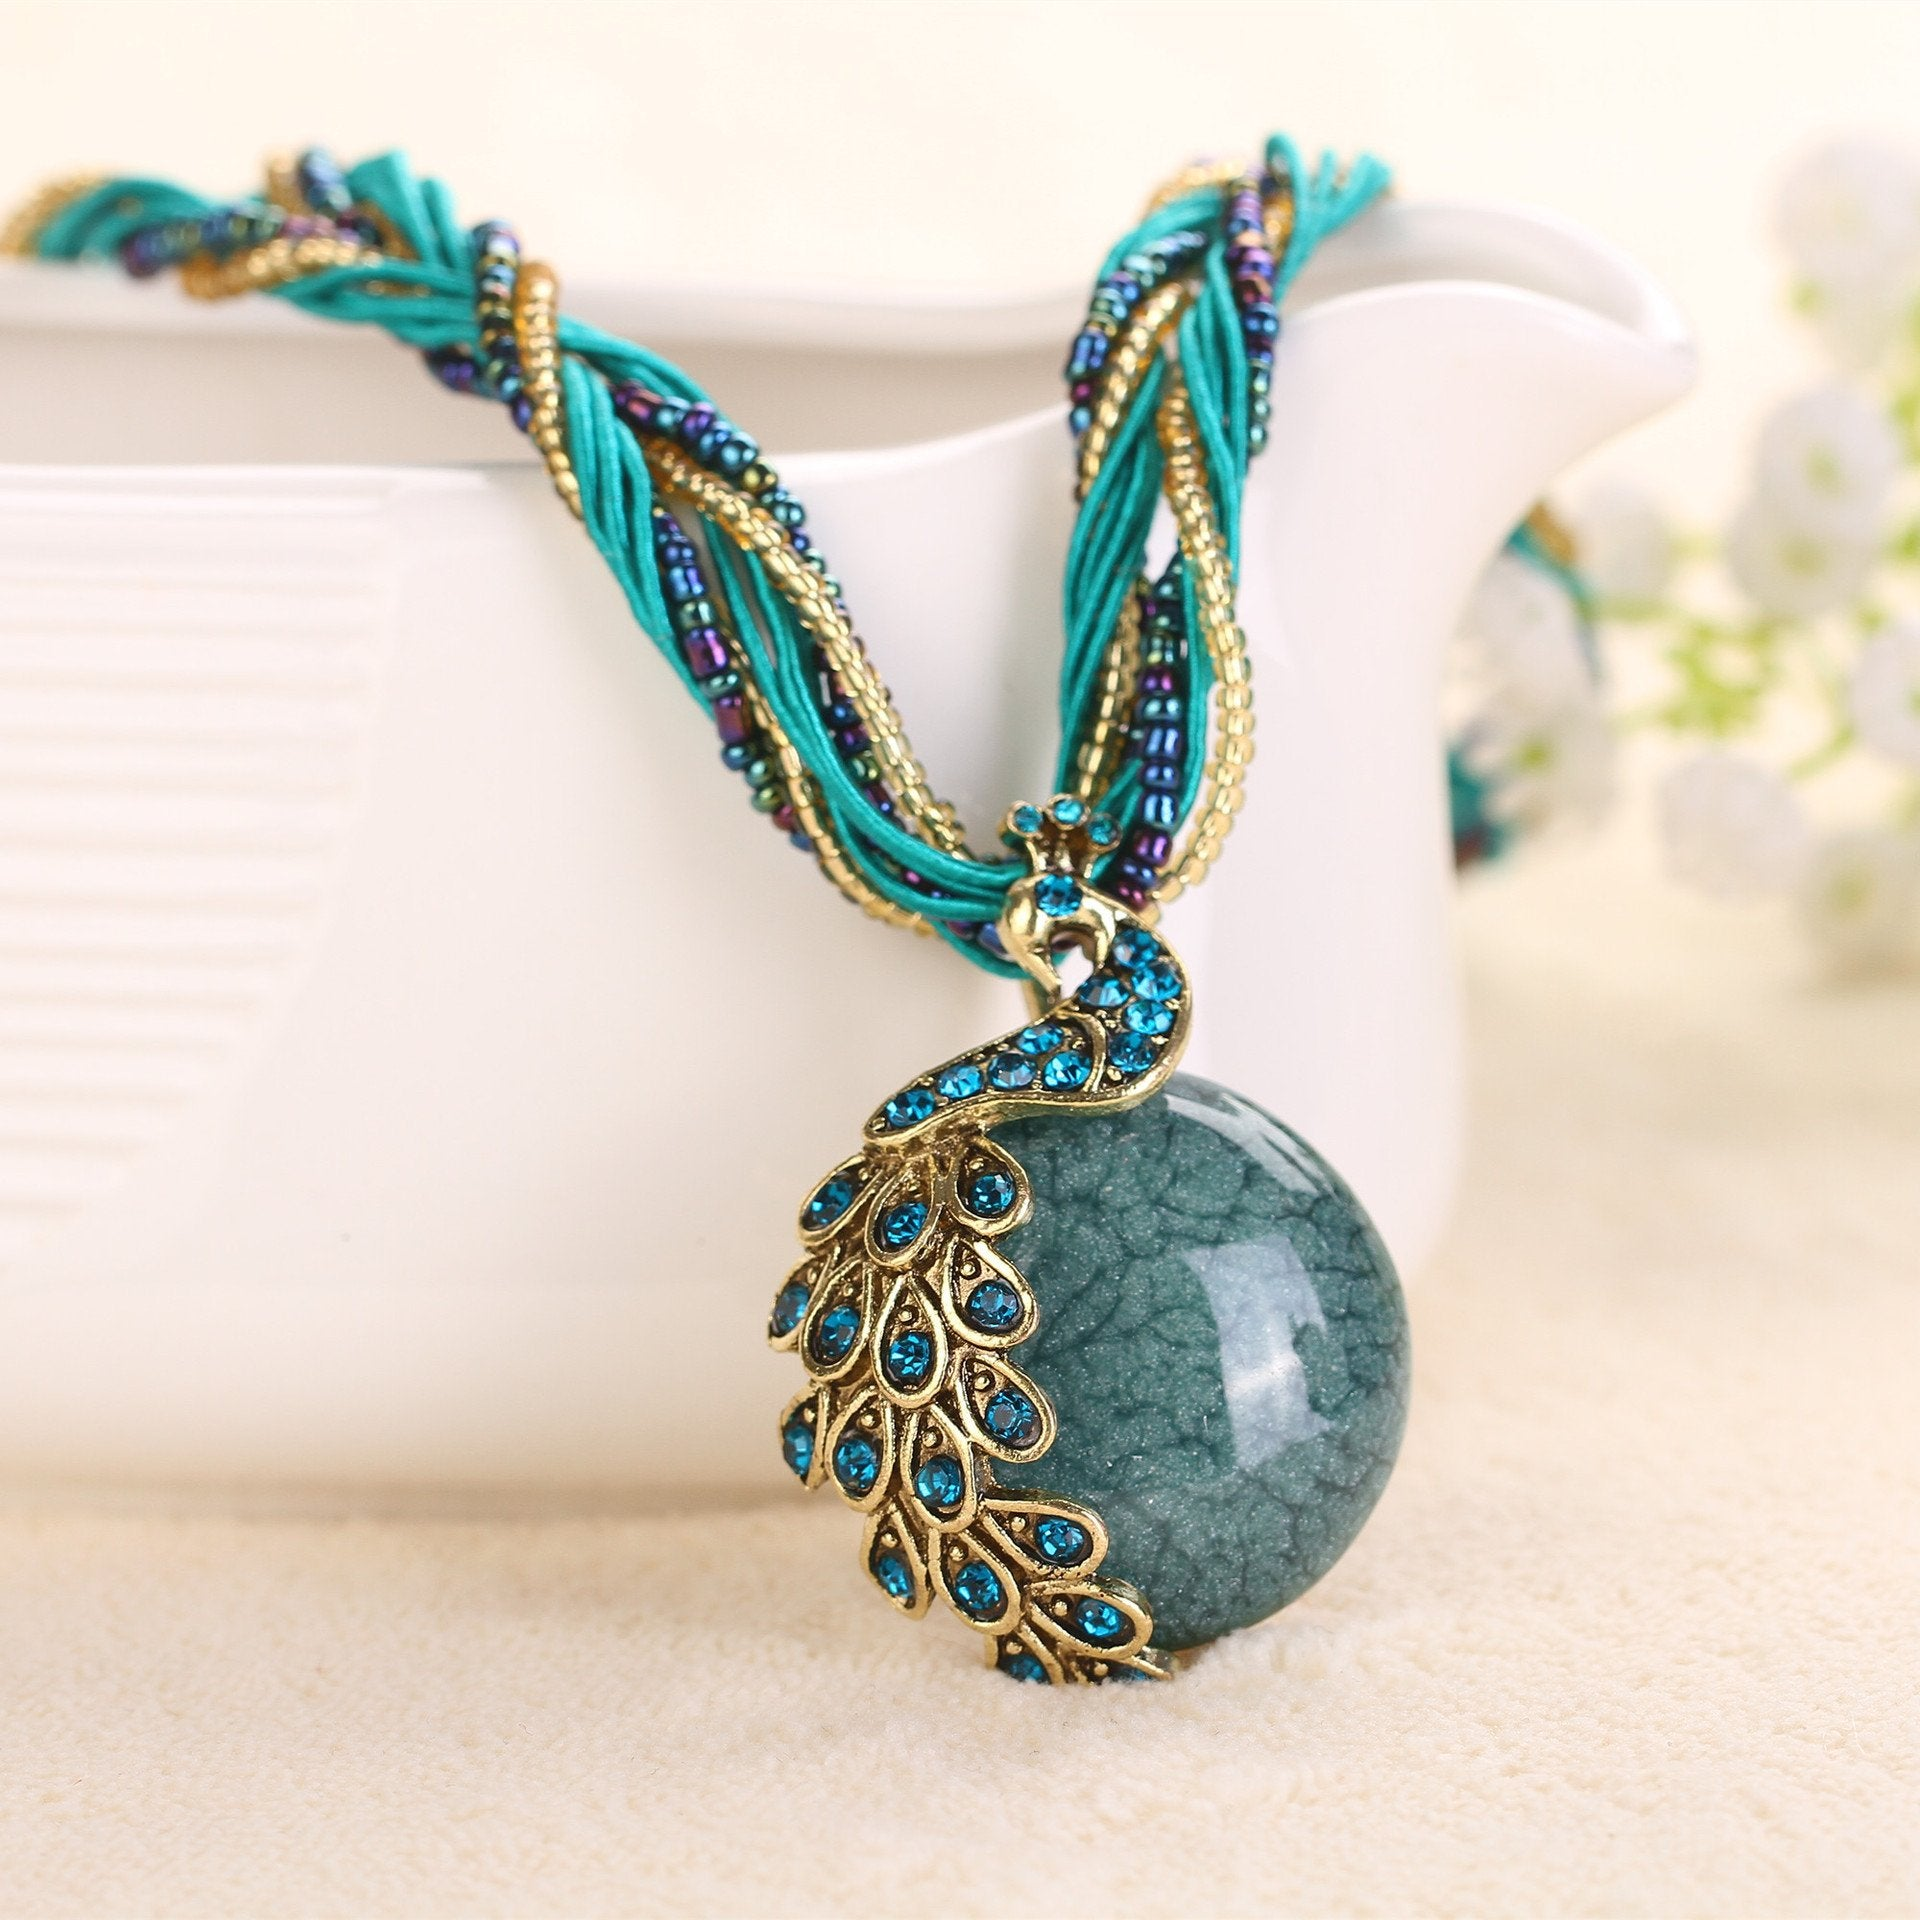 Bohemia necklace with peacock accessories